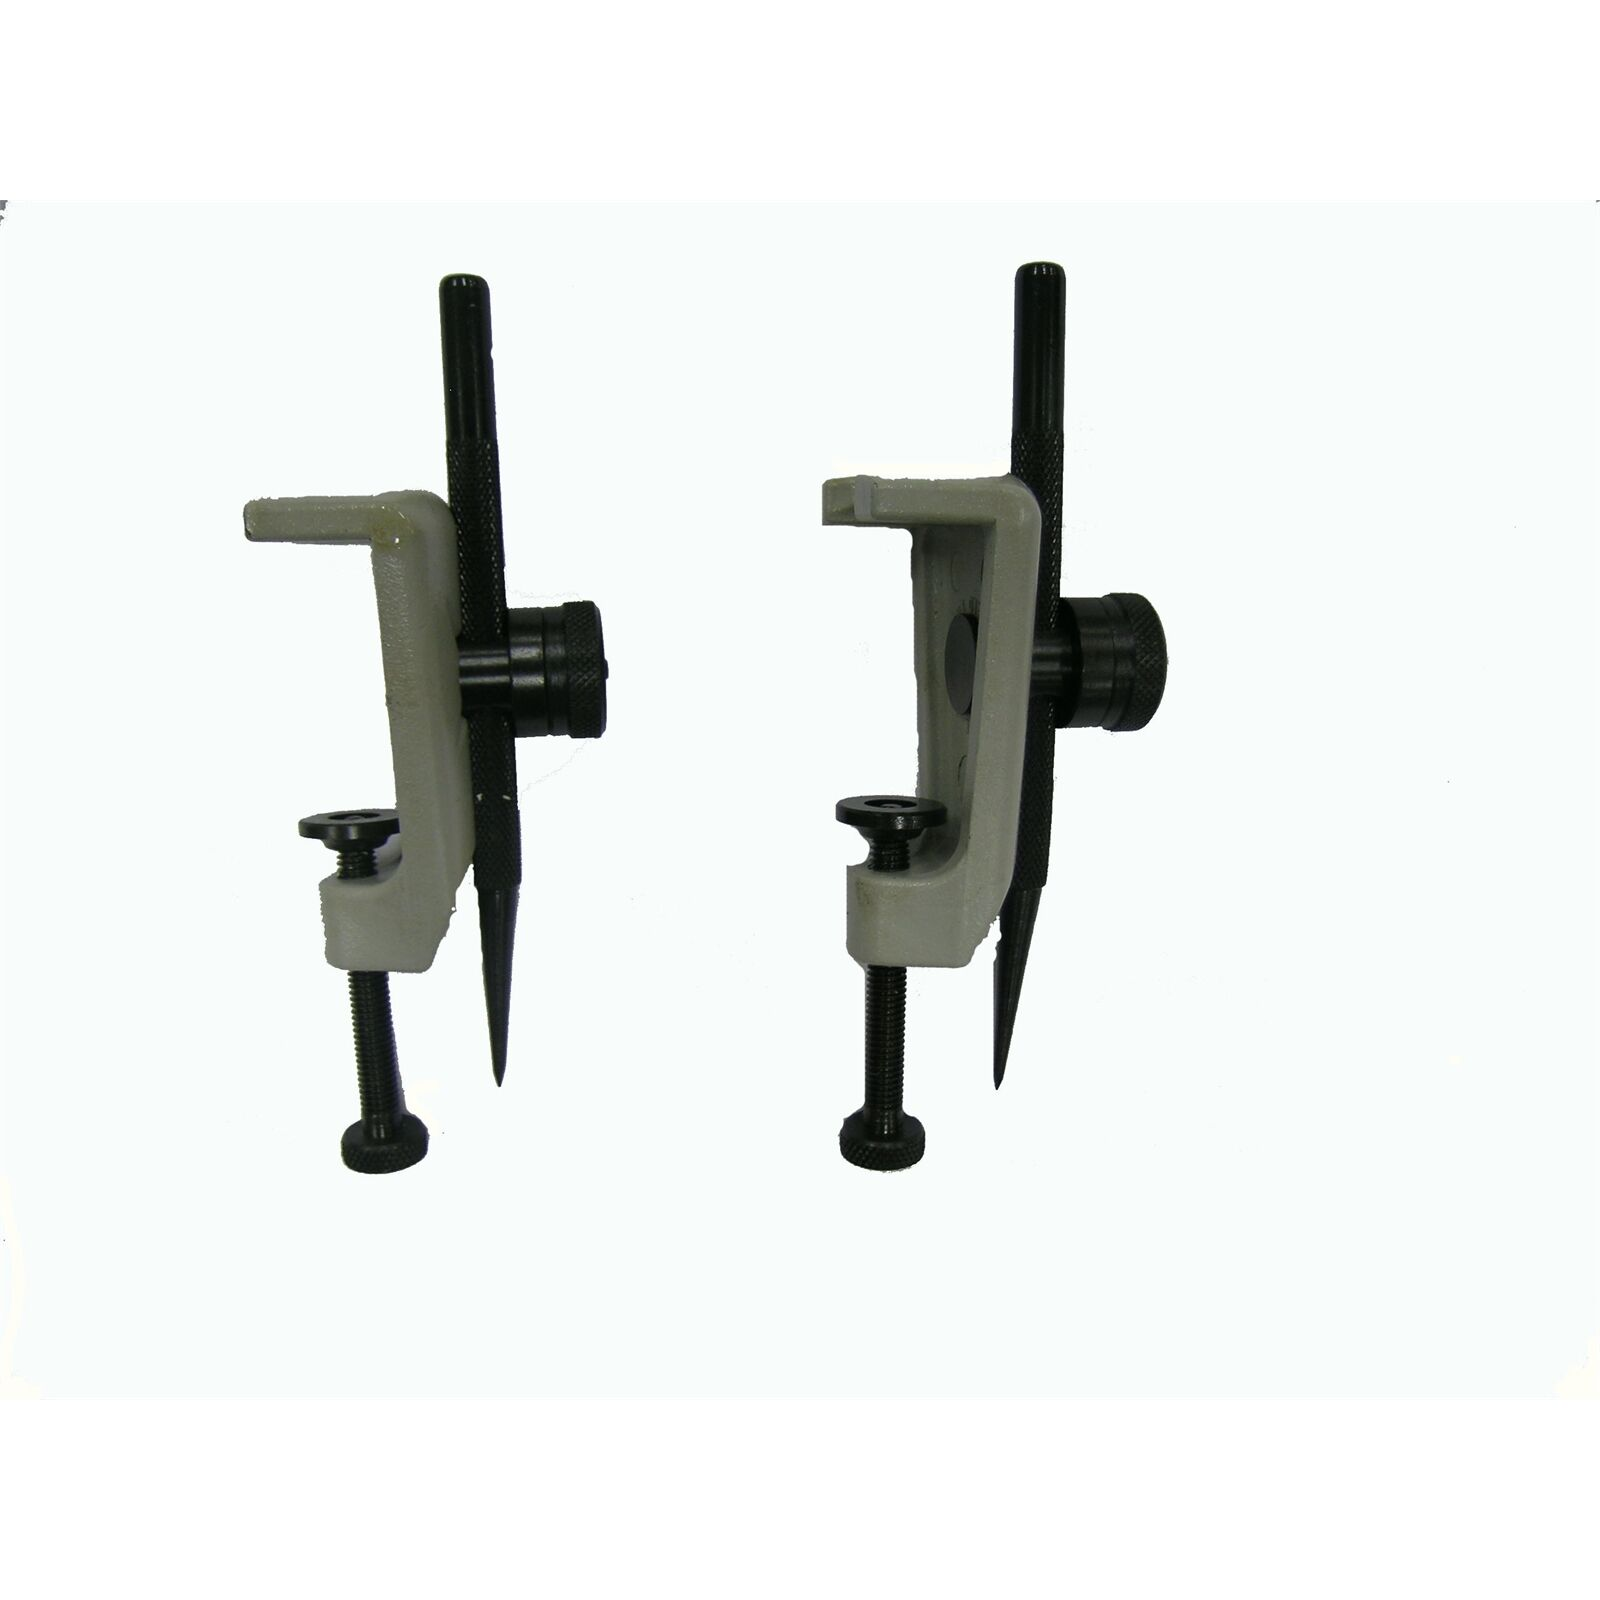 Eclipse TRAMMEL HEAD 1Pair Replaceable Hardened Points, Accepts 20-38mm Beams